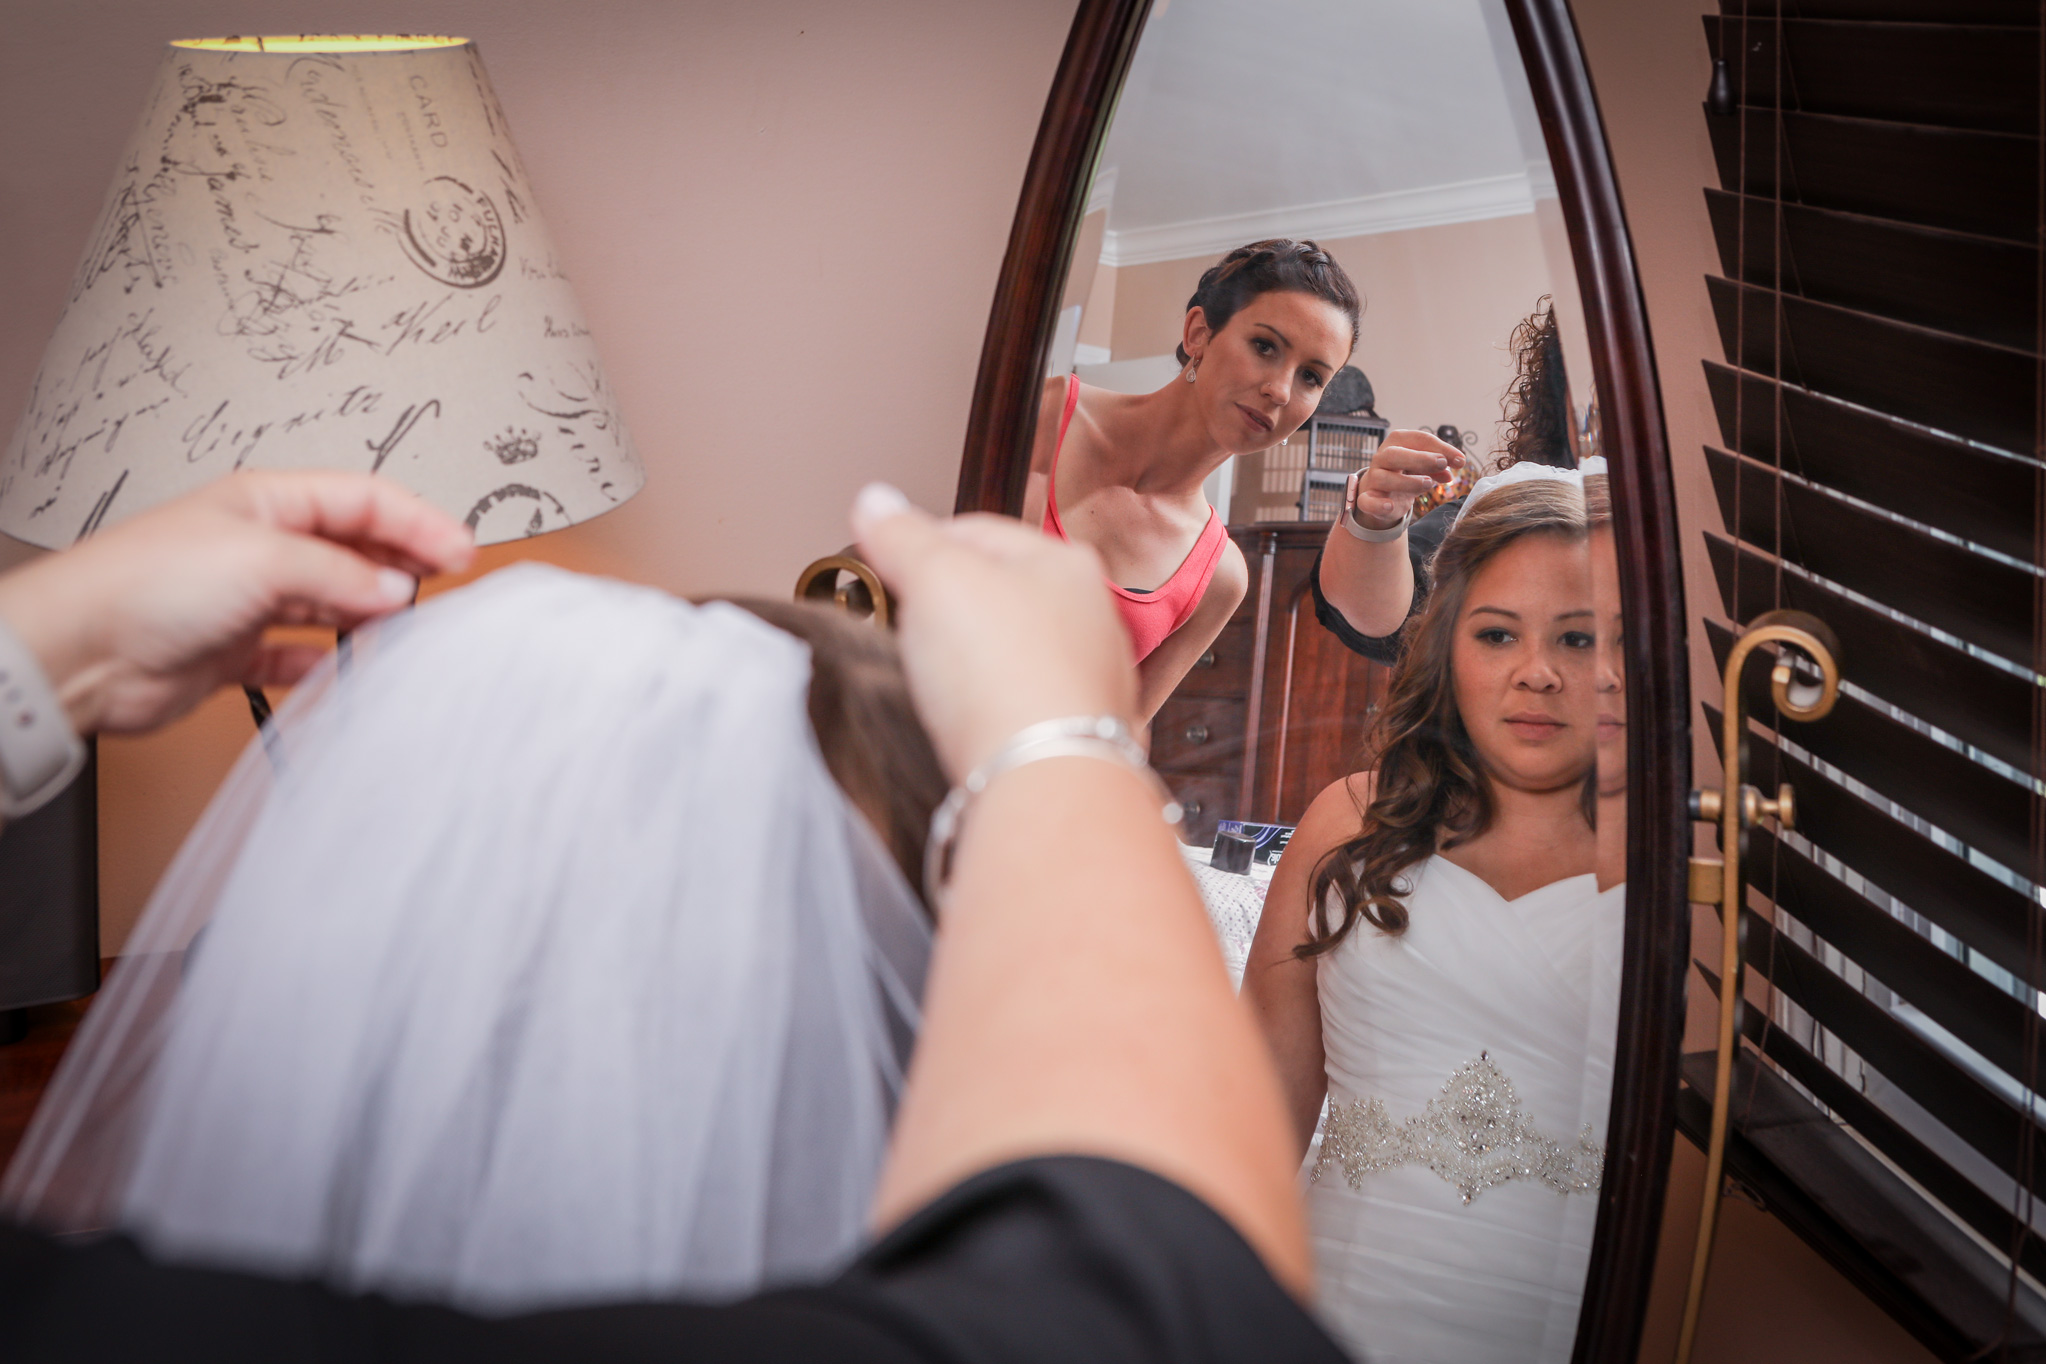 annie_matthew_wedding_cary_illinois_jeff_gathman_photography_5.jpg